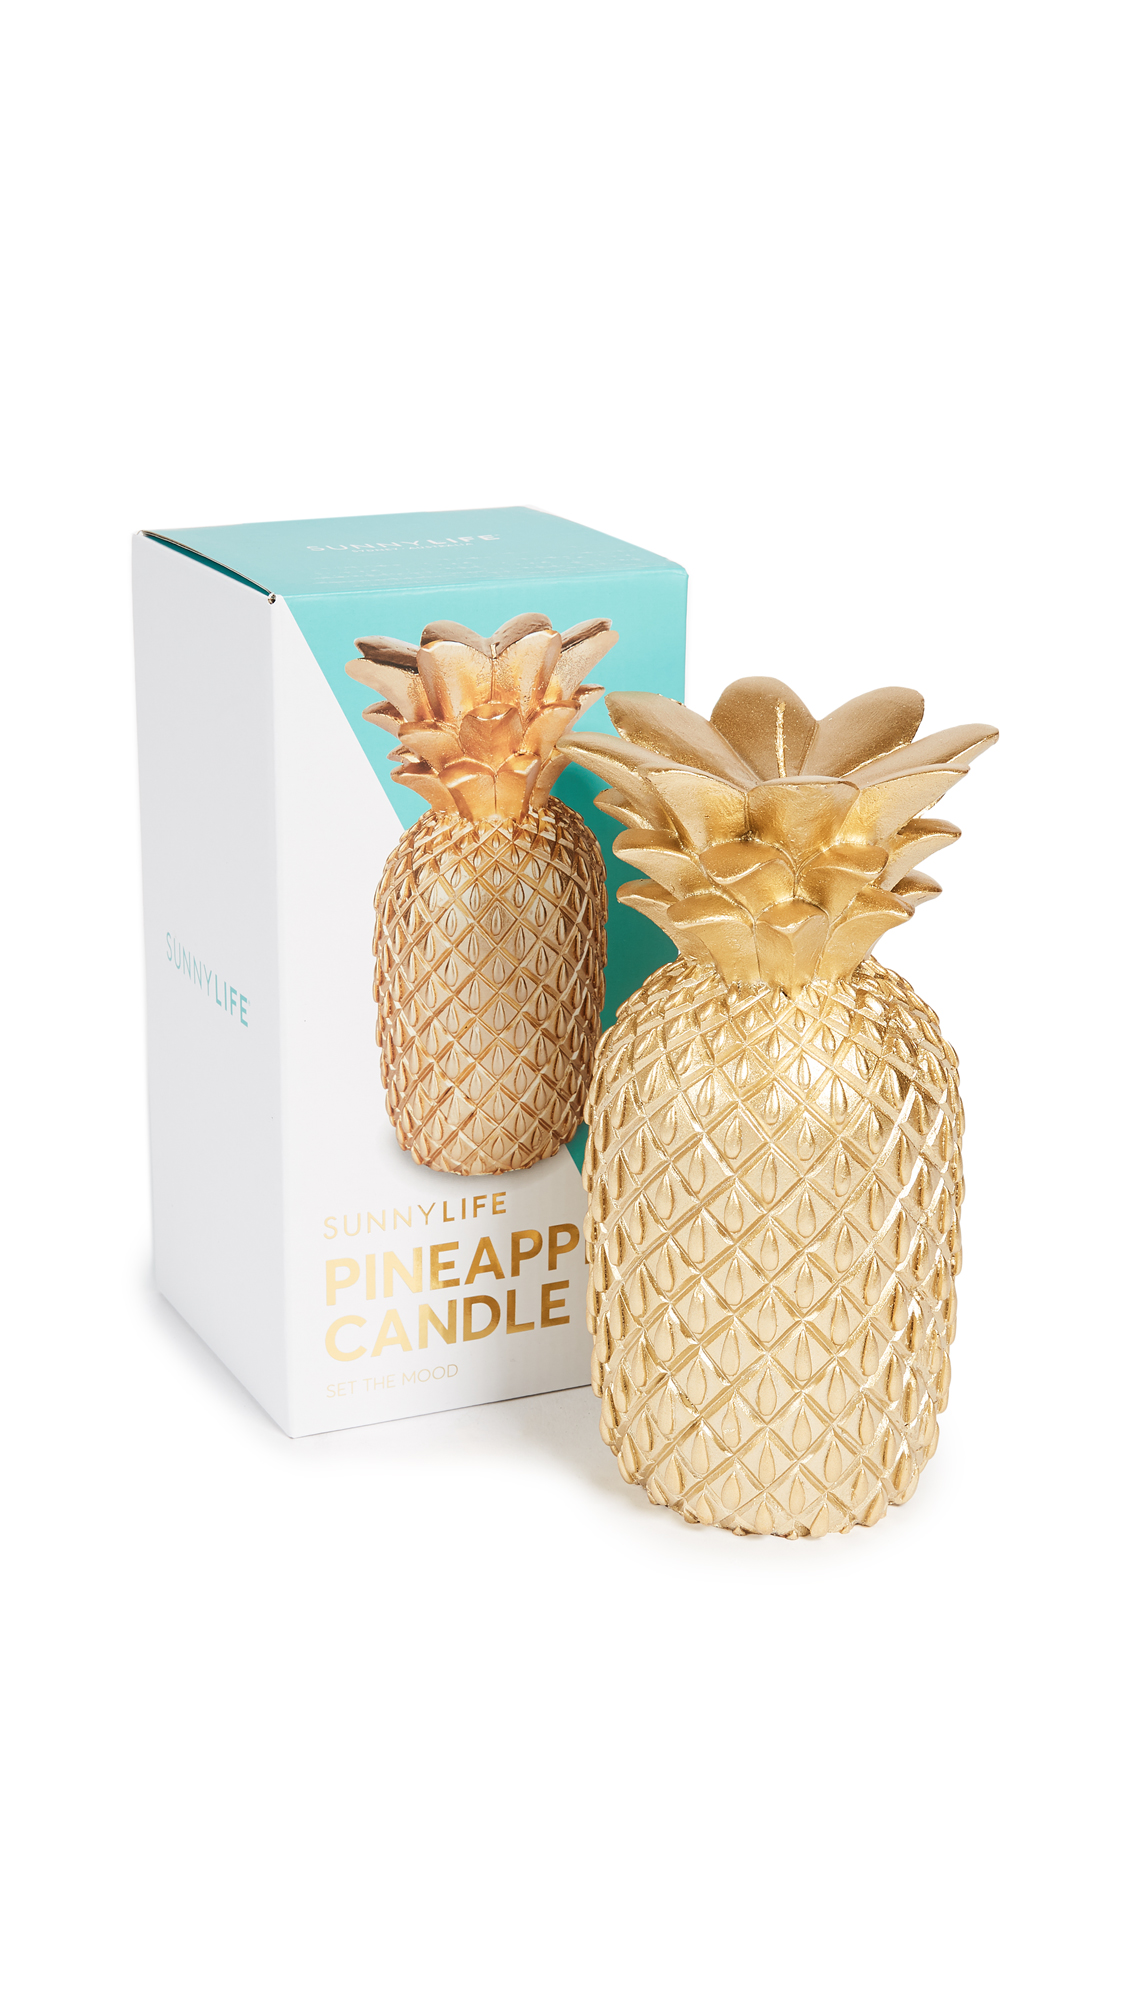 SunnyLife Pineapple Candle